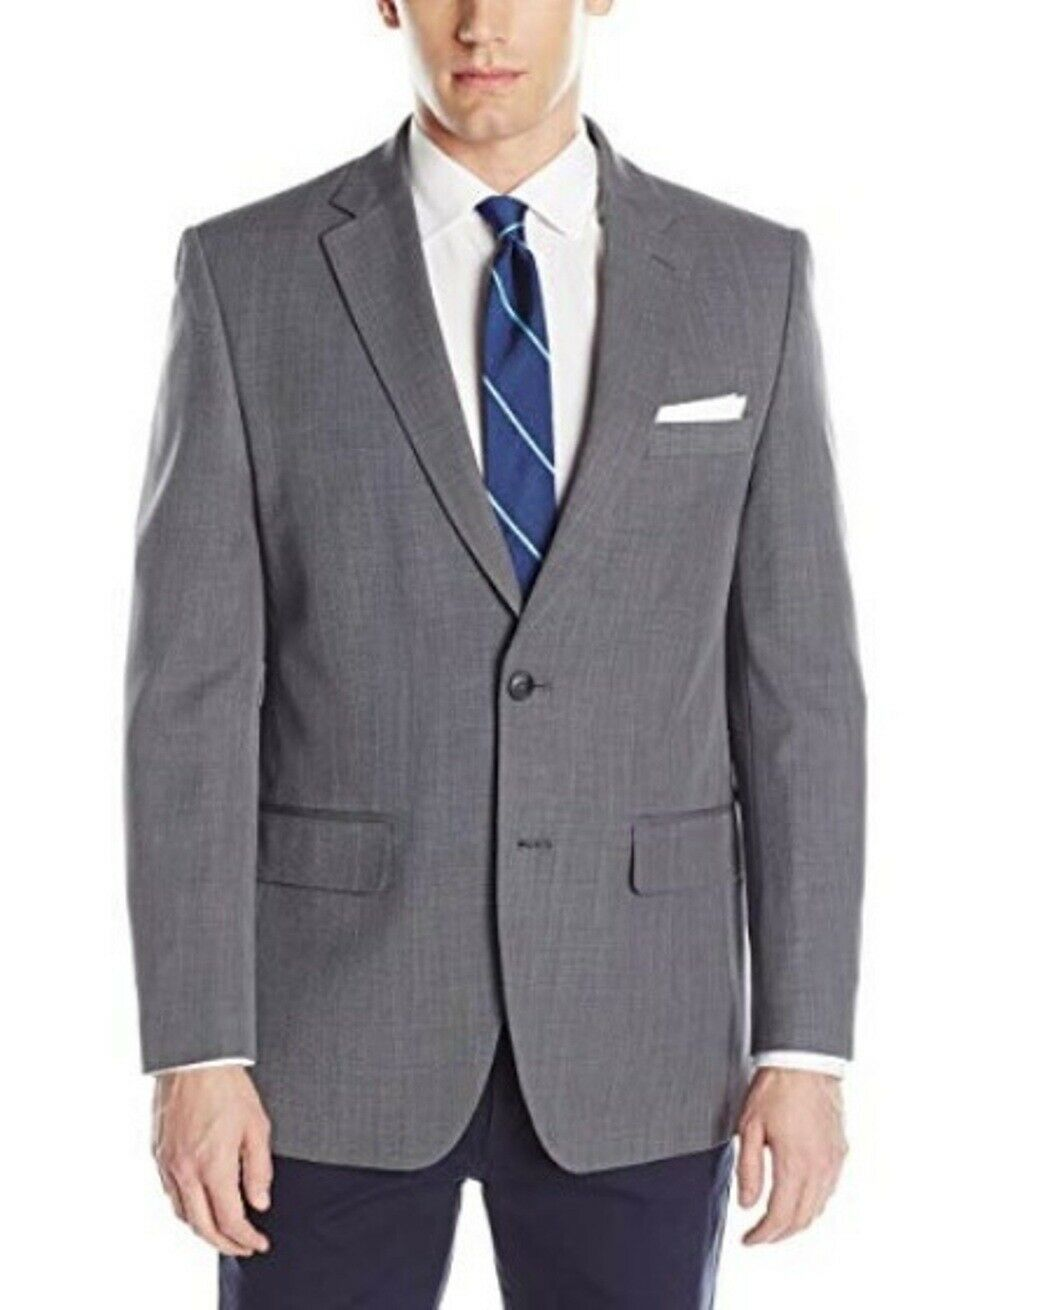 New Haggar Mens Travel Performance Tailored Fit Suit Separate Coat Grey 150